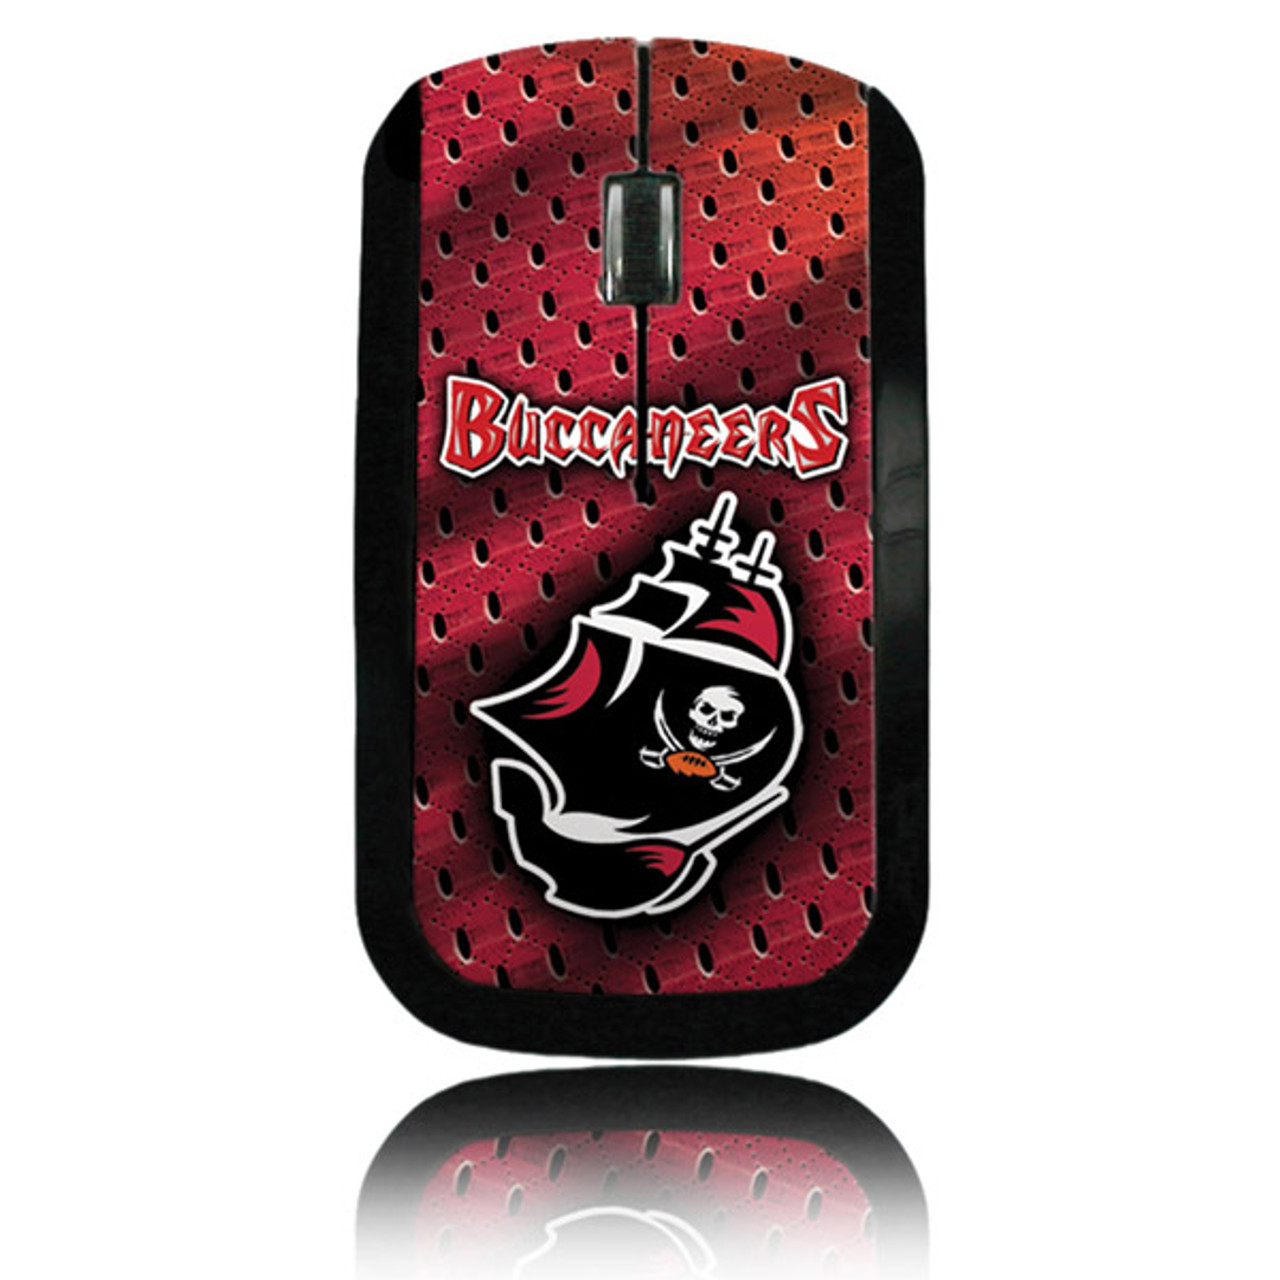 Tampa Bay Buccaneers NFL Wireless Mouse Laptop Computer Apple Mac - Dragon  Sports eddac306a